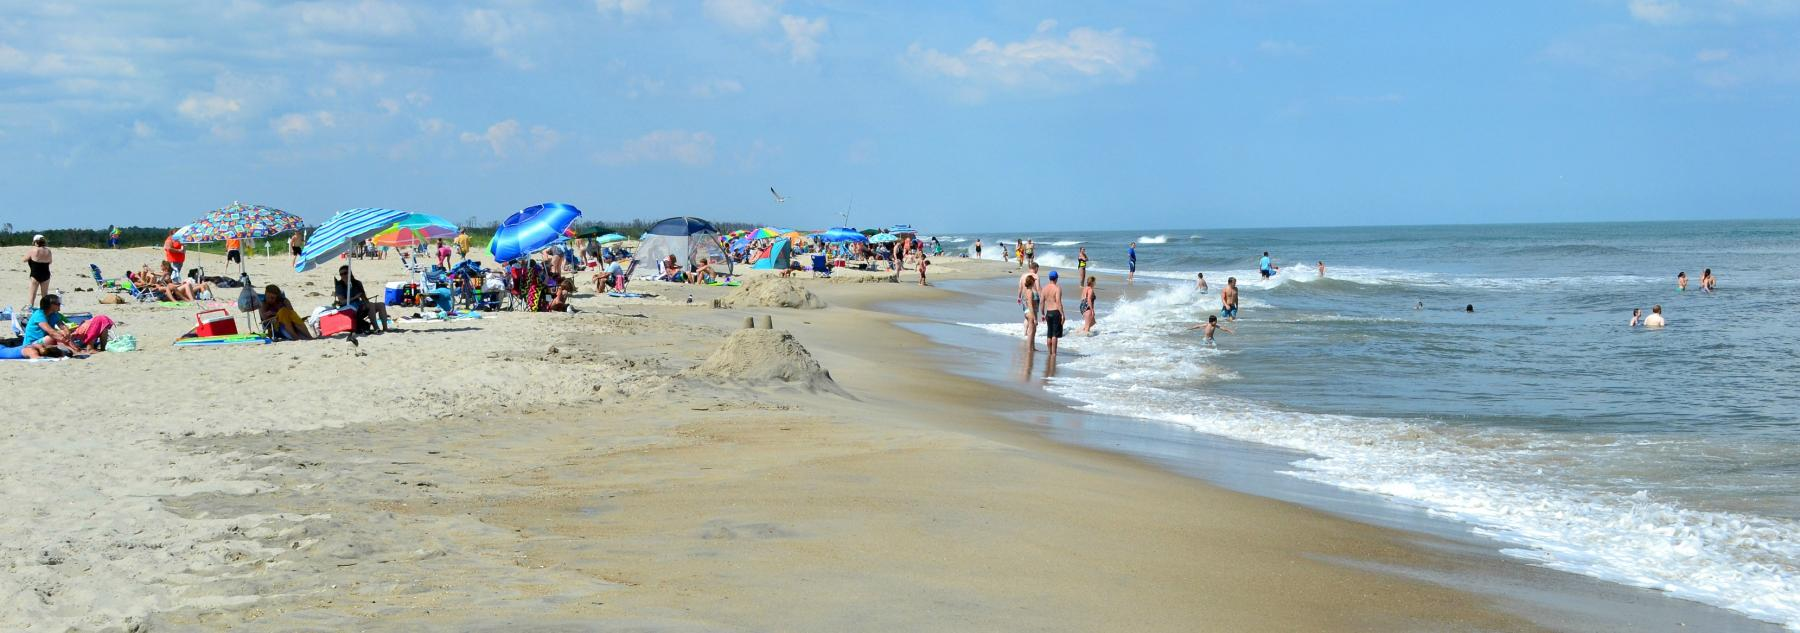 Assateague Island Beach